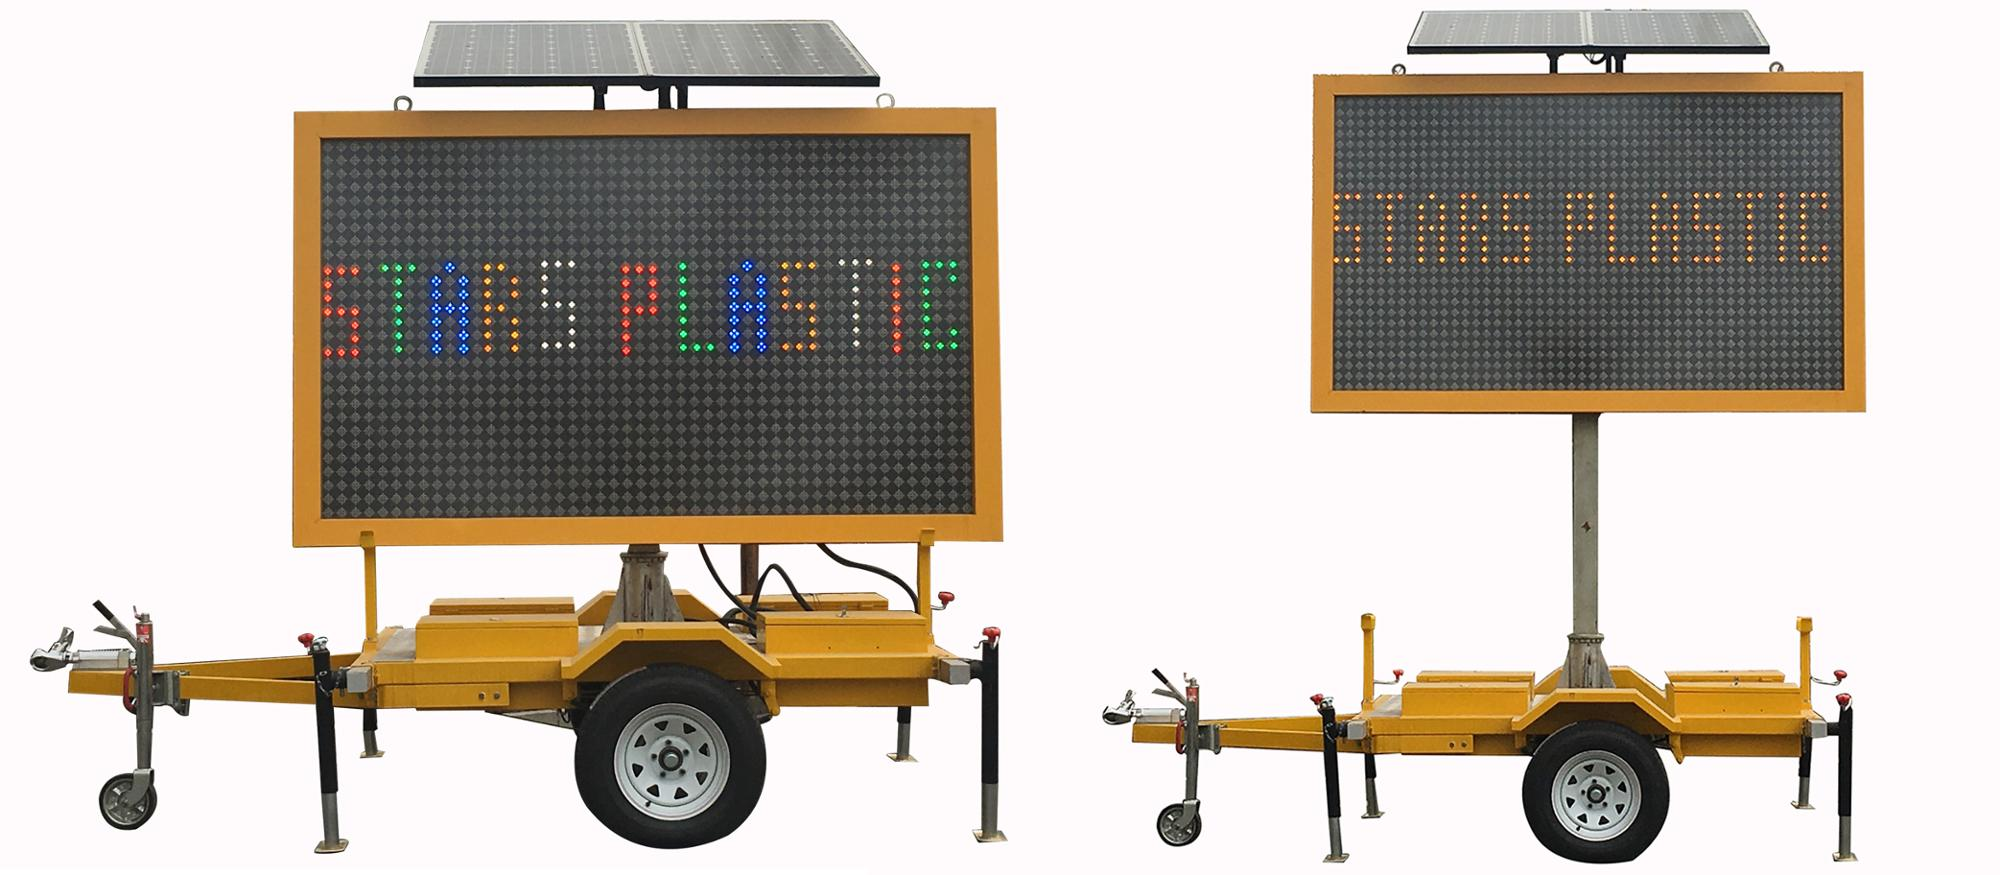 Solar Truck Mount Variable Message Sign For Traffic Management, Outdoor Variable Message Sign